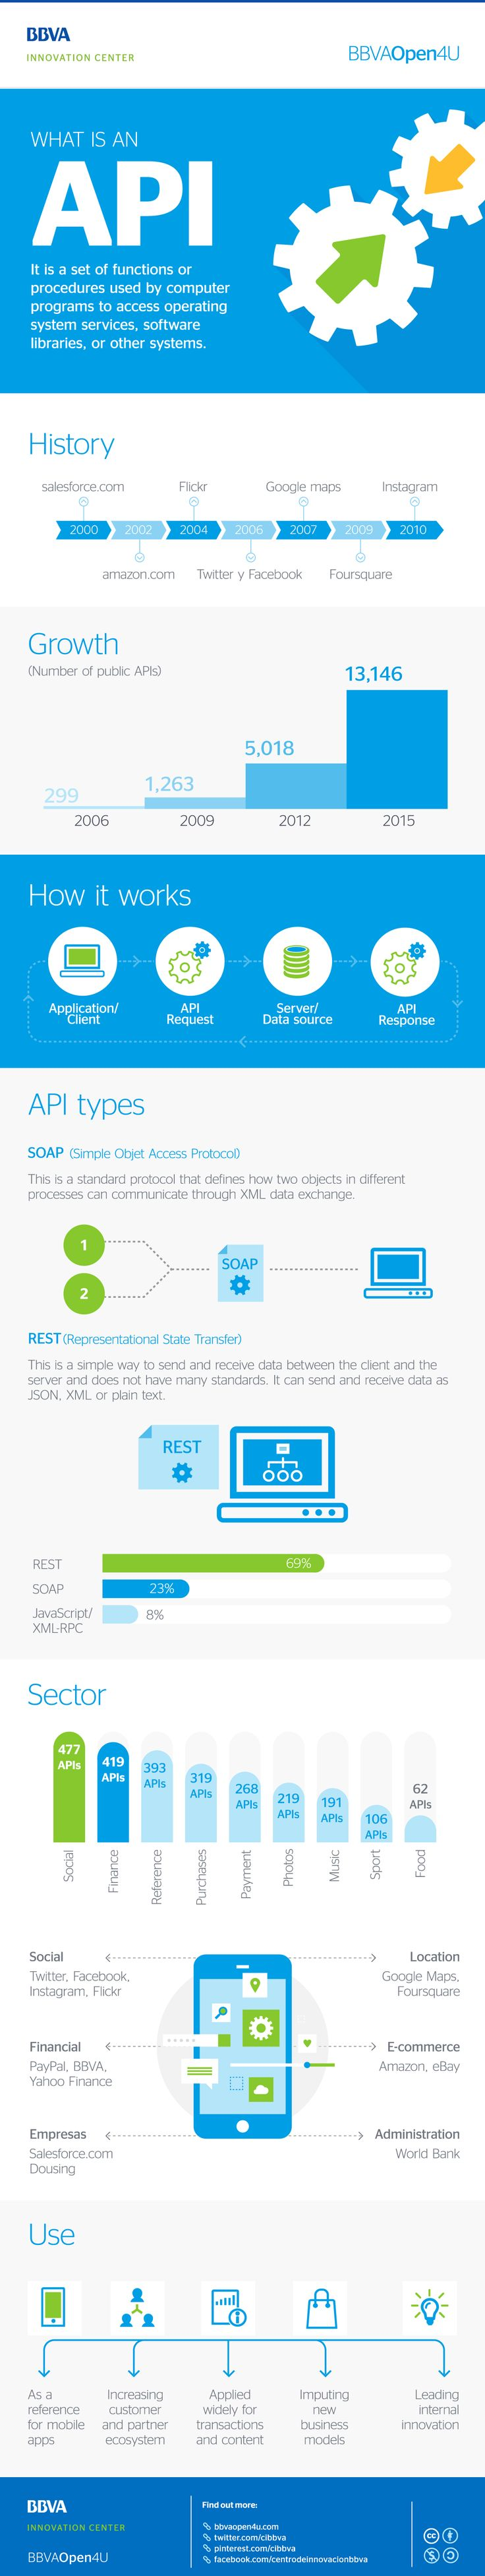 Infographic: What is an API? #APIs #Technology #Developers #Programming #Innovation #Infographic